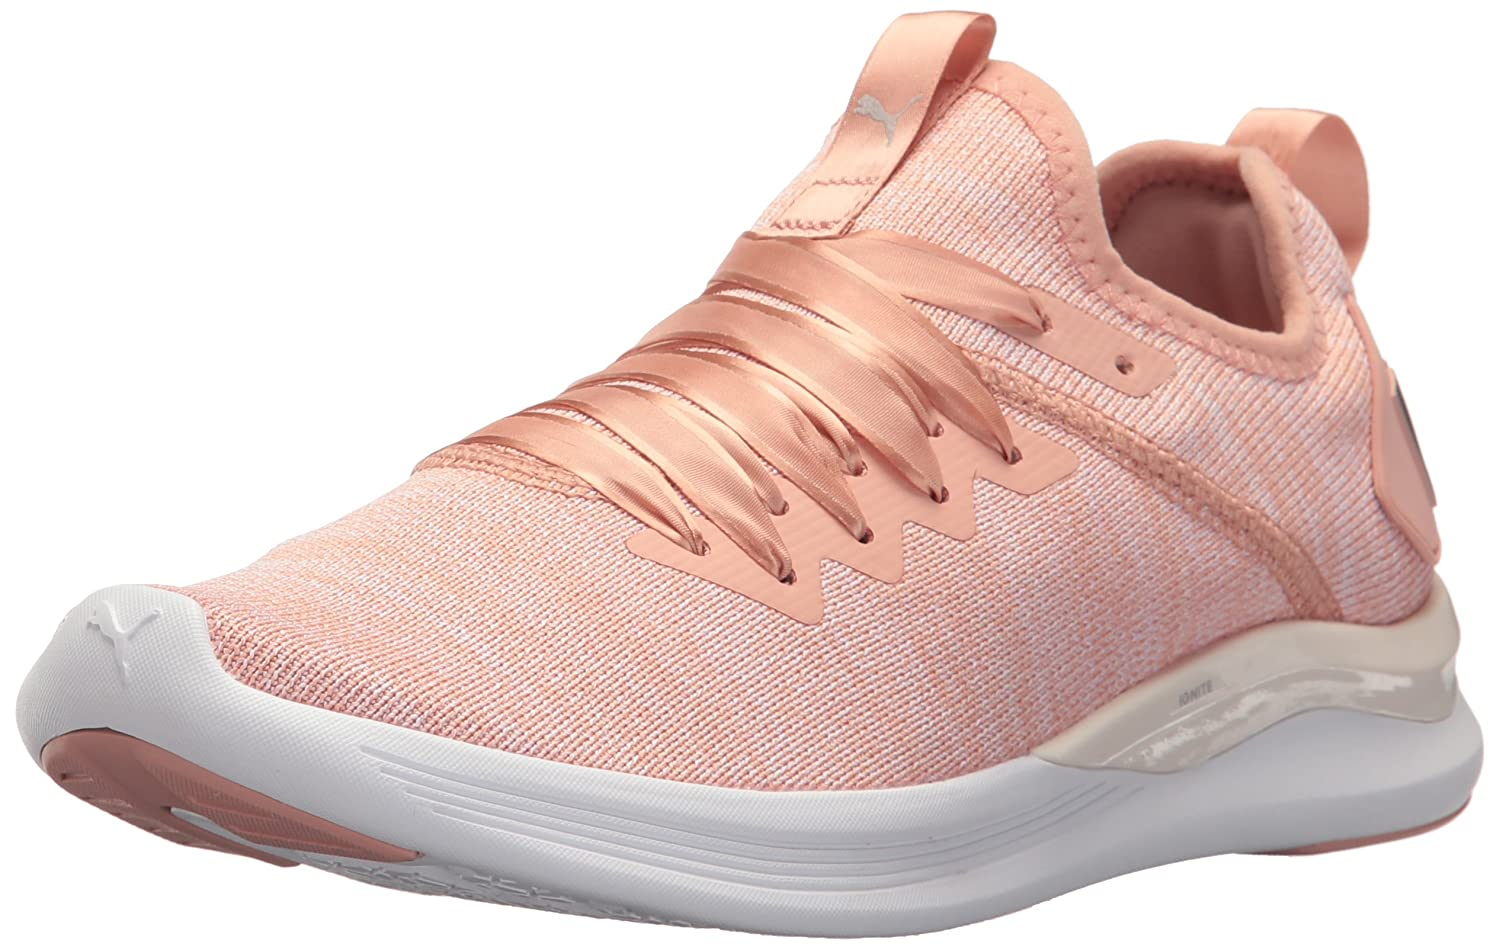 PUMA Women's Ignite Flash Evoknit Satin En Pointe Wn Sneaker B072N2XMPZ 8 B(M) US|Peach Beige-pearl-puma White